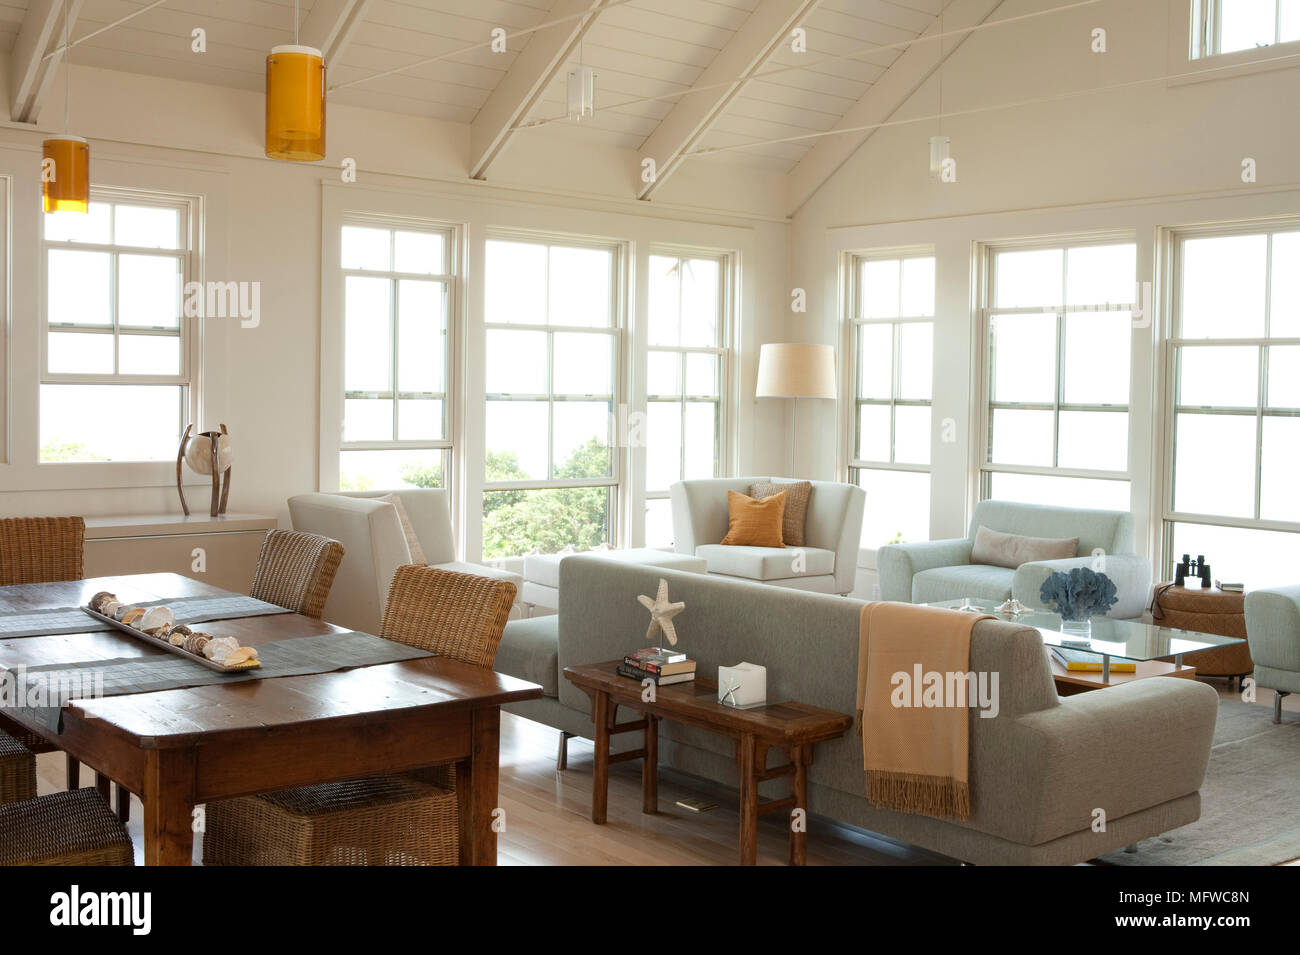 Wooden Dining Table And Seating In Open Plan Modern Country Style Sitting  Room